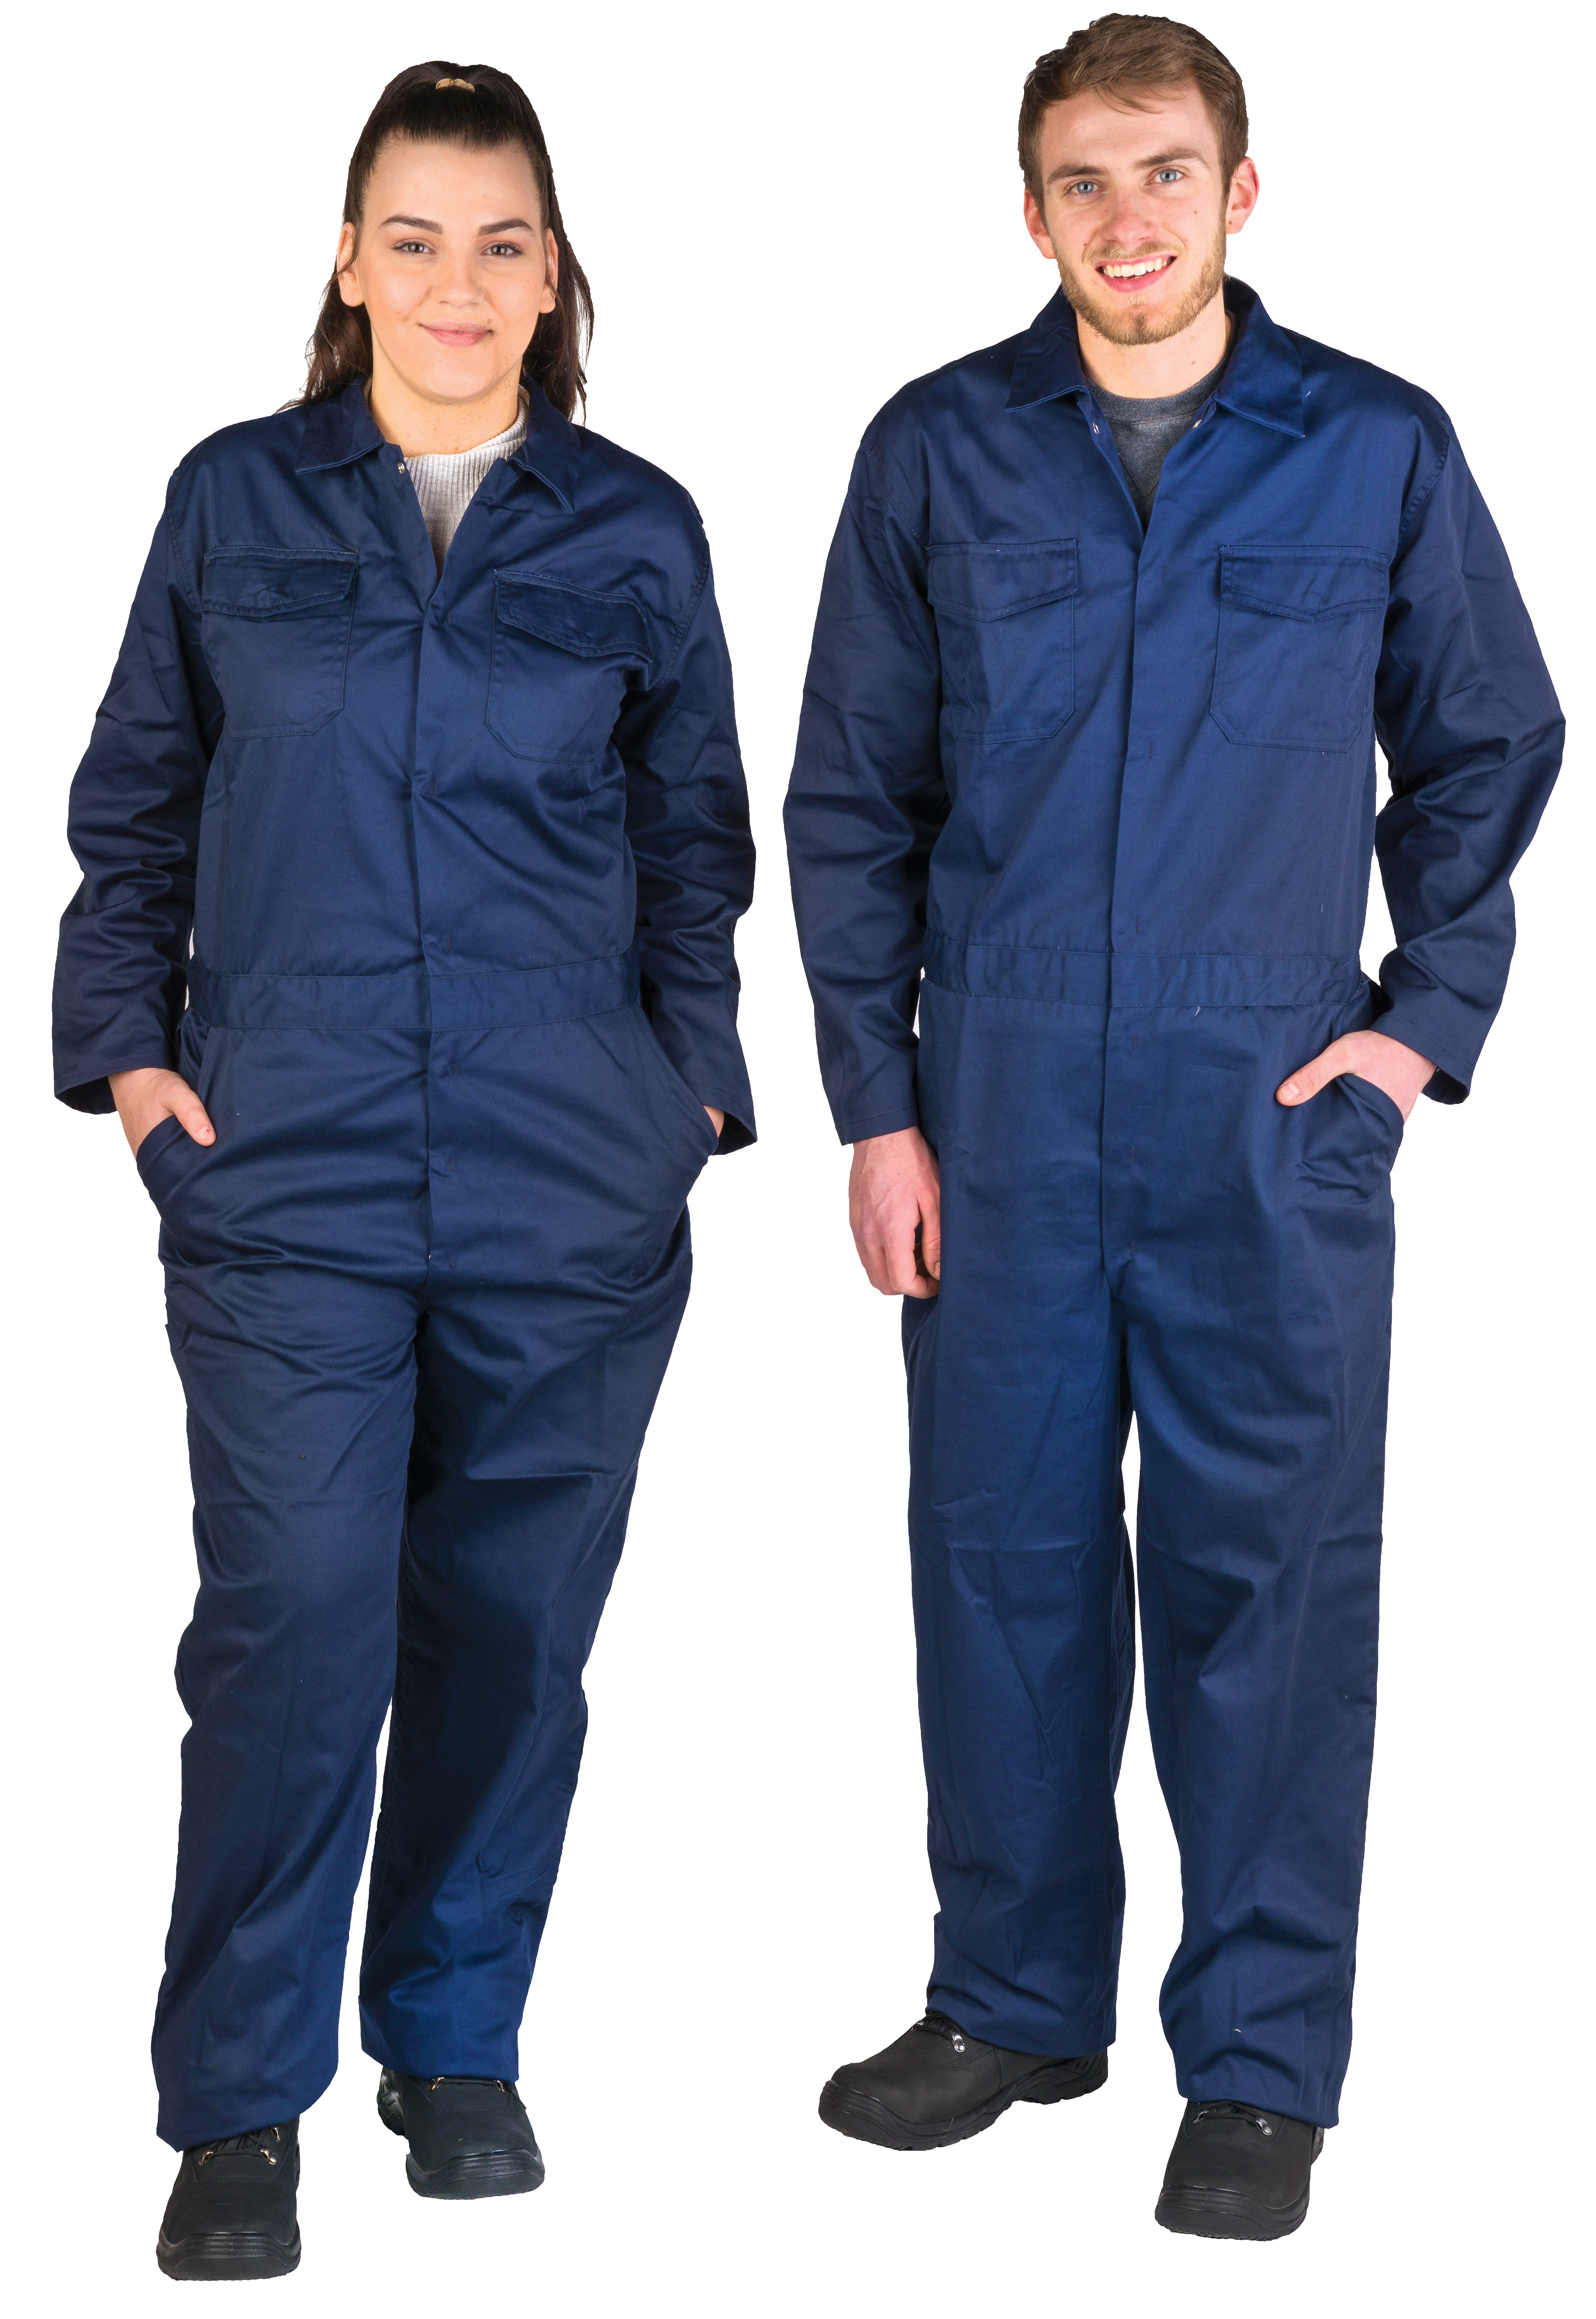 60bd7d5517d Boiler suit   Work Overalls - Large Size from Tyre Bay Direct